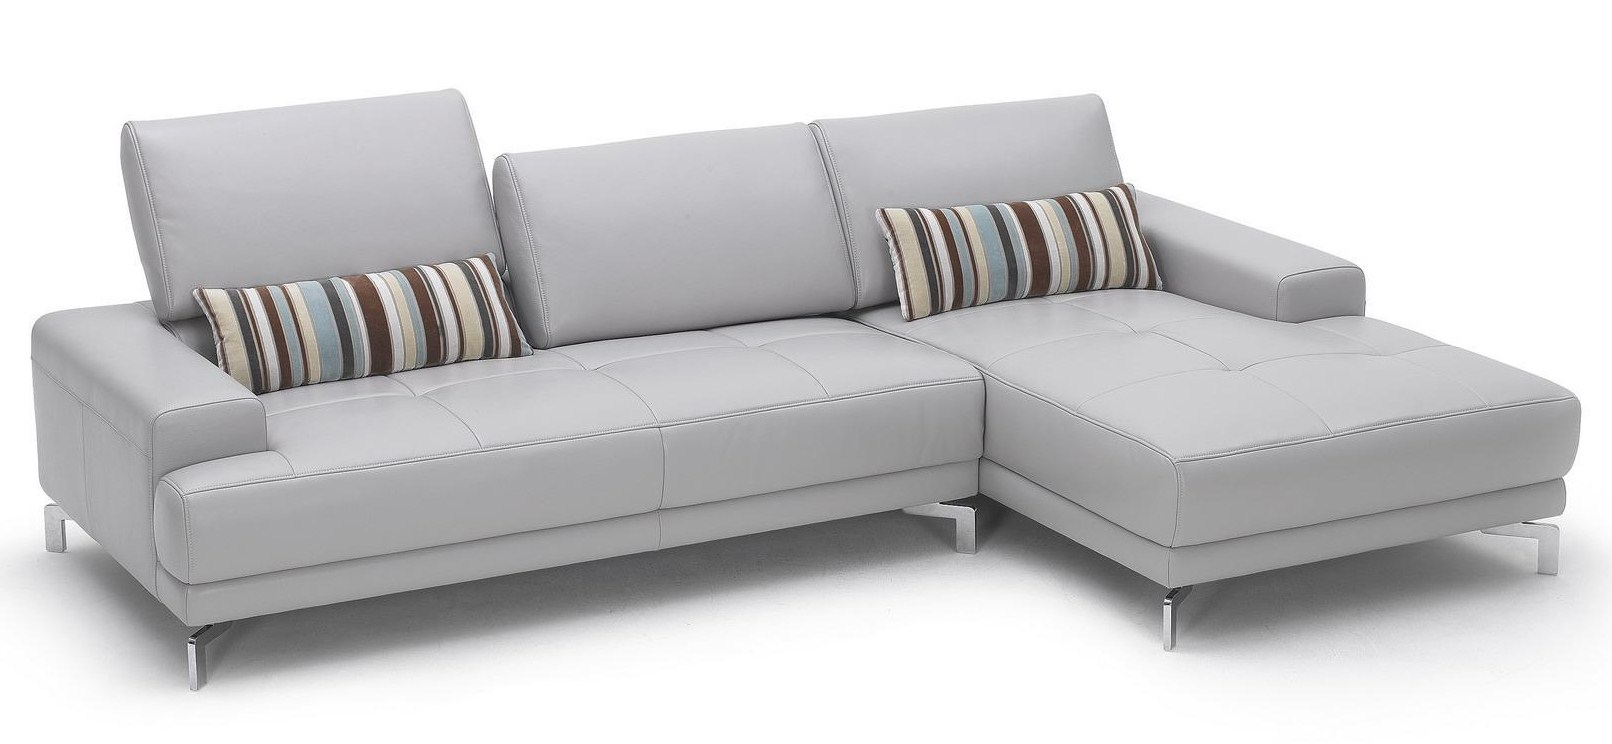 Modern Sofa Modern Sofa White 1329_1 New York